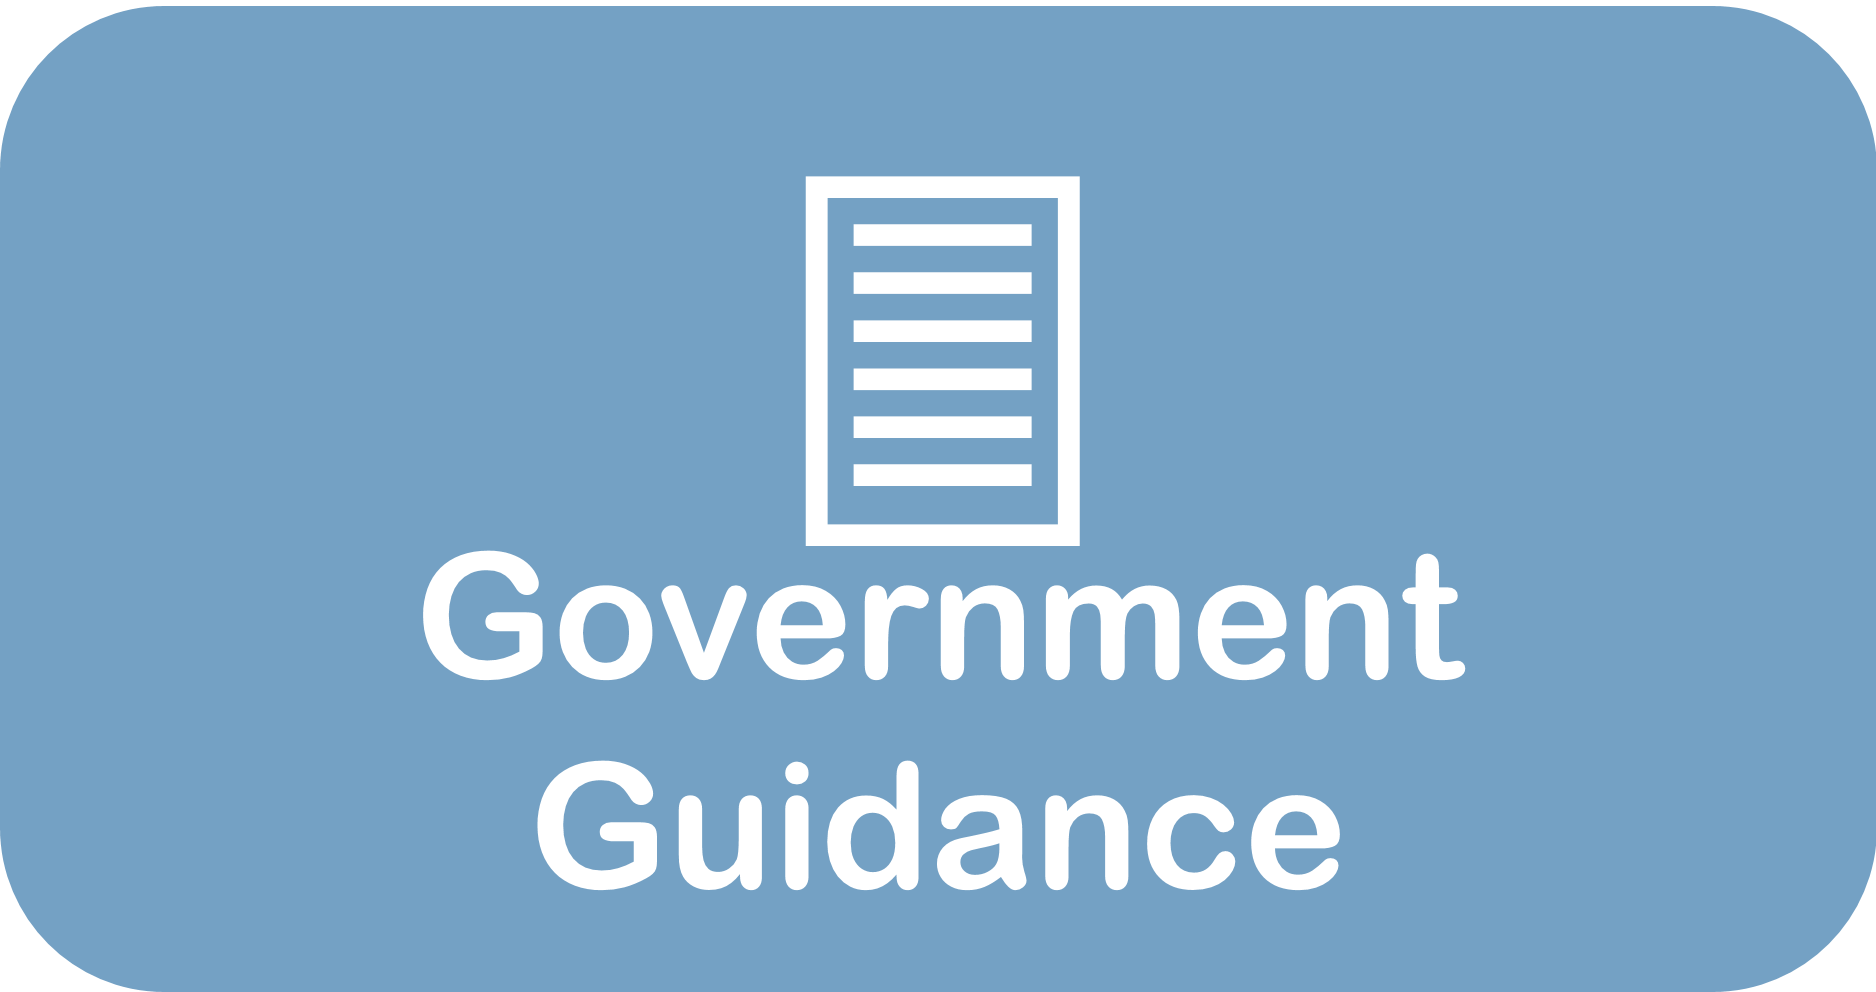 Government Guidance